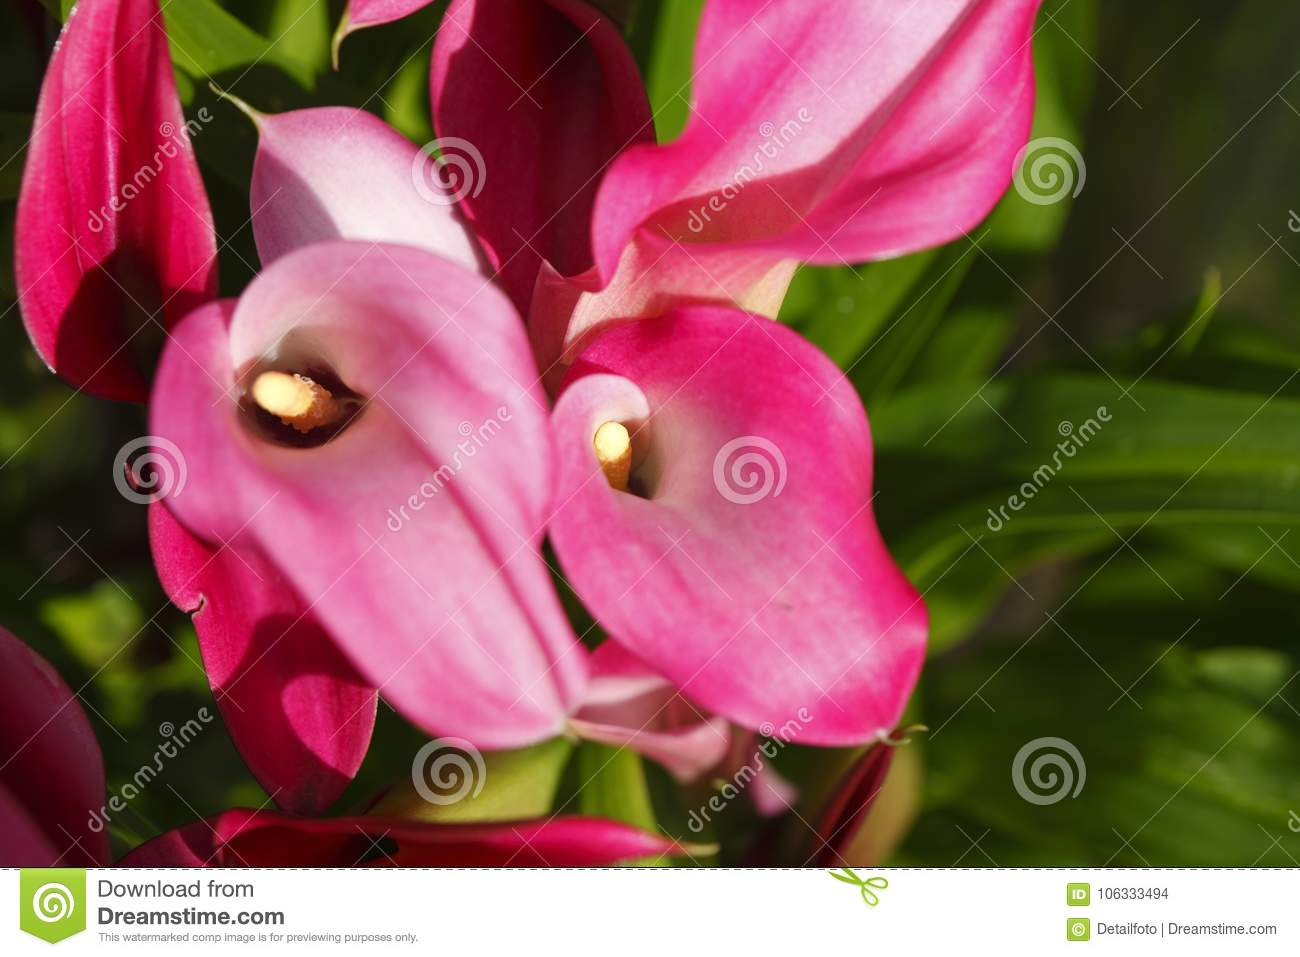 Calla Lily Flower Stock Photo Image Of Blossoms Callas 106333494